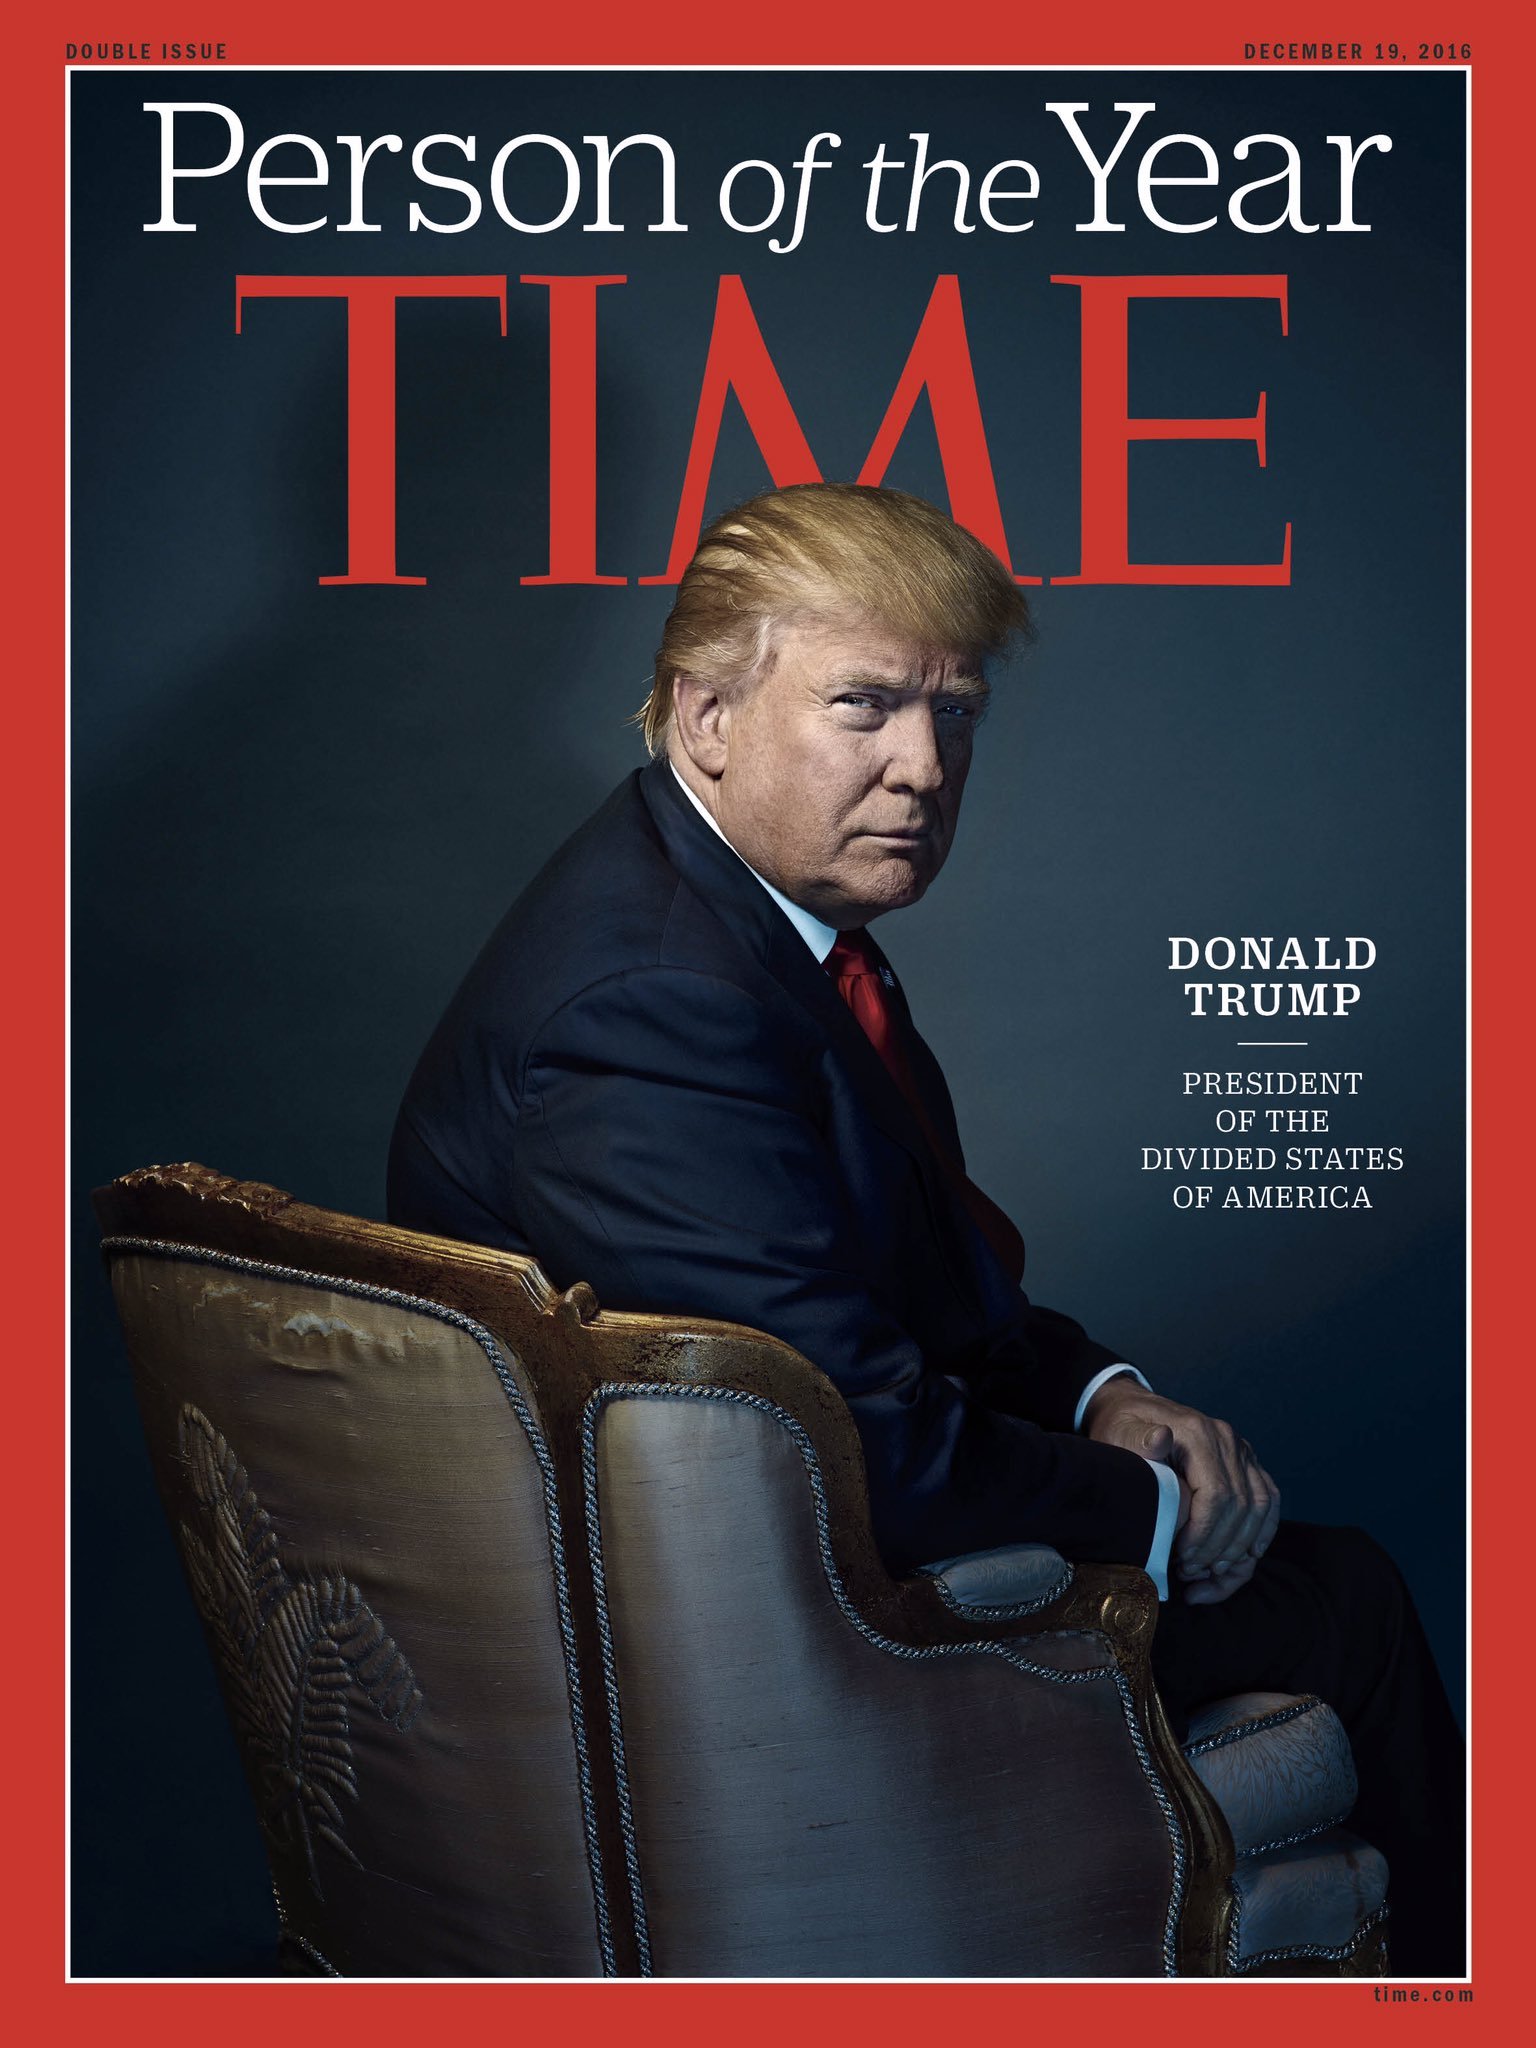 See why Donald Trump was chosen as TIME's Person of the Year 2016 #TIMEPOY https://t.co/vm5uBFijOP https://t.co/NUaxIOw2ed